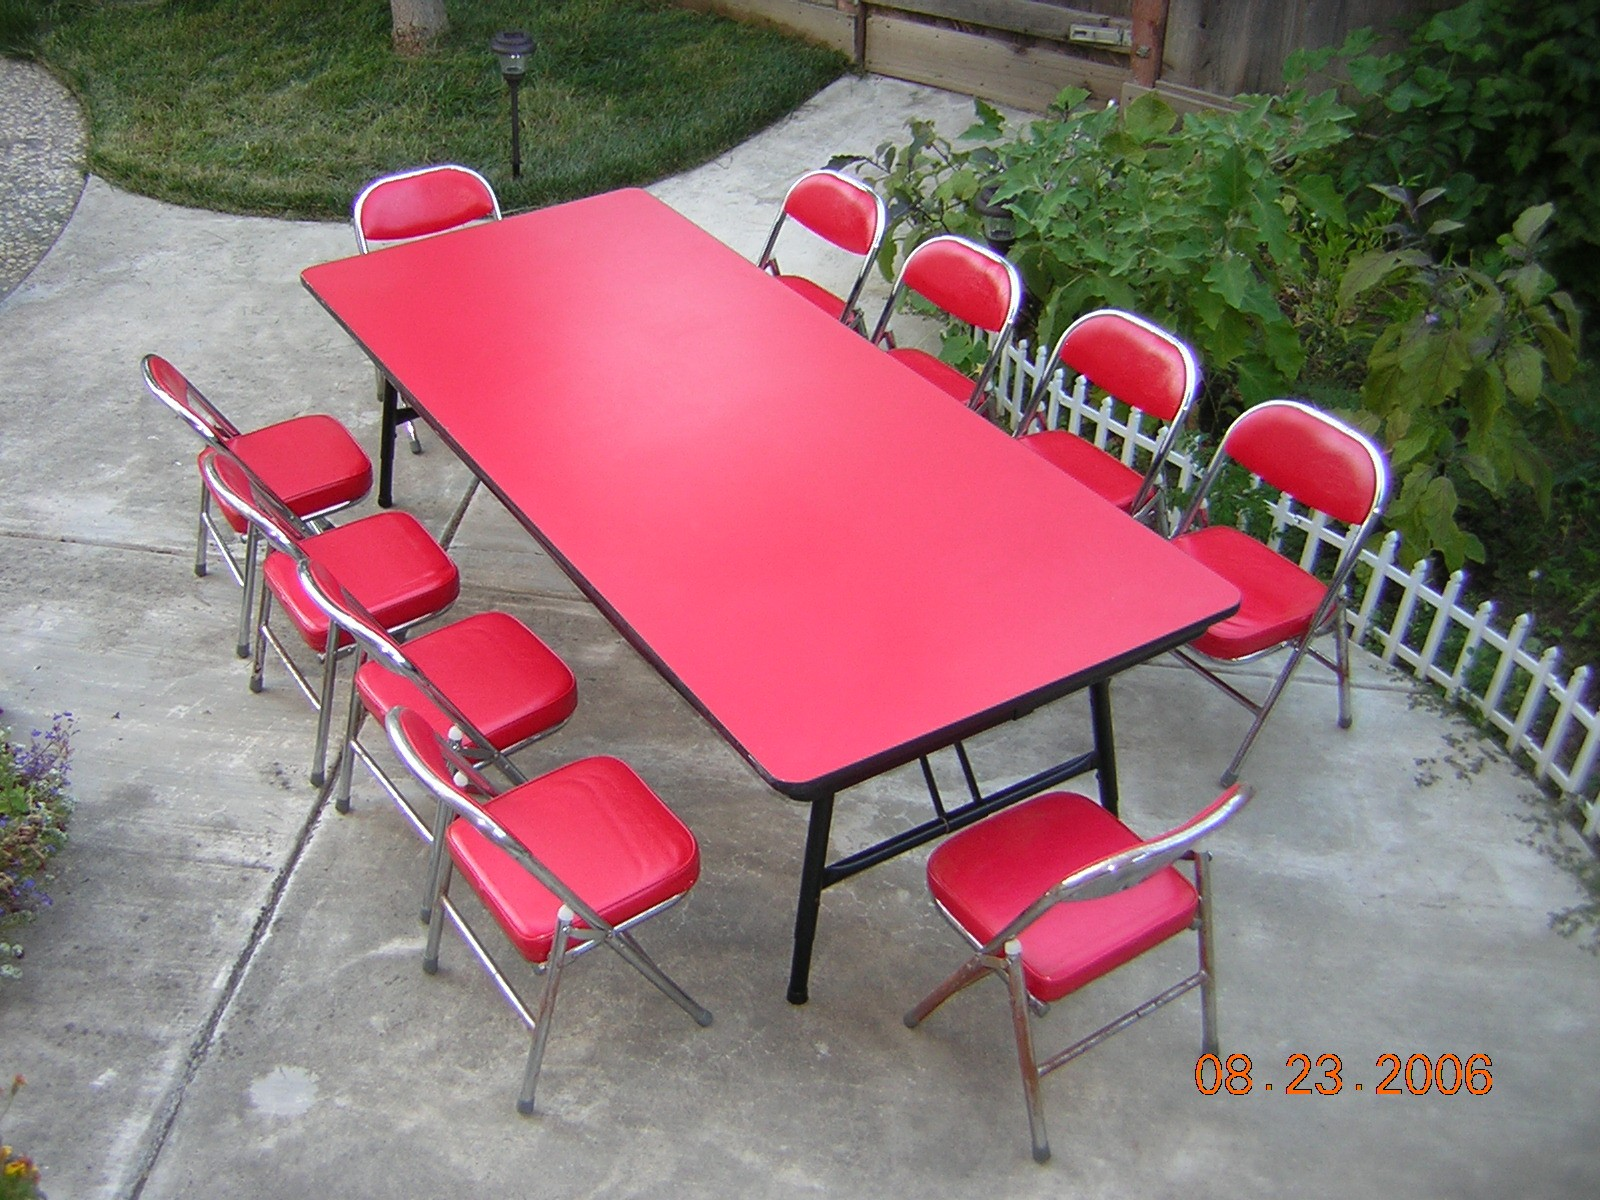 chair rentals phoenix small white for bedroom fresh table and near me rtty1